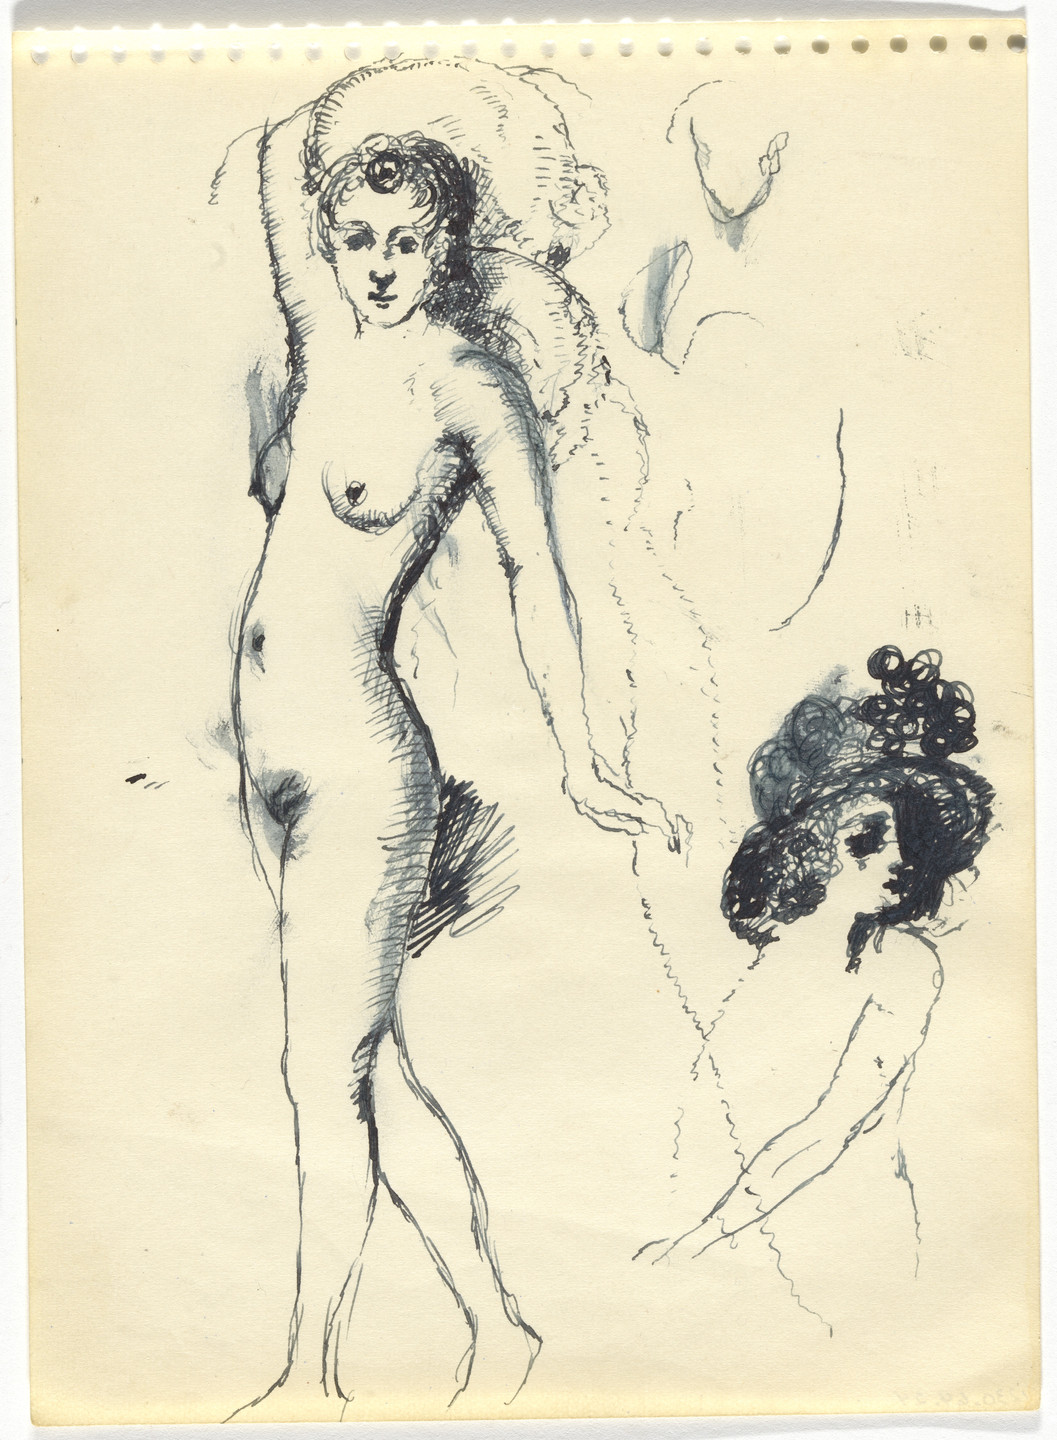 Paul Delvaux. Sketchbook. (c. 1939-44)